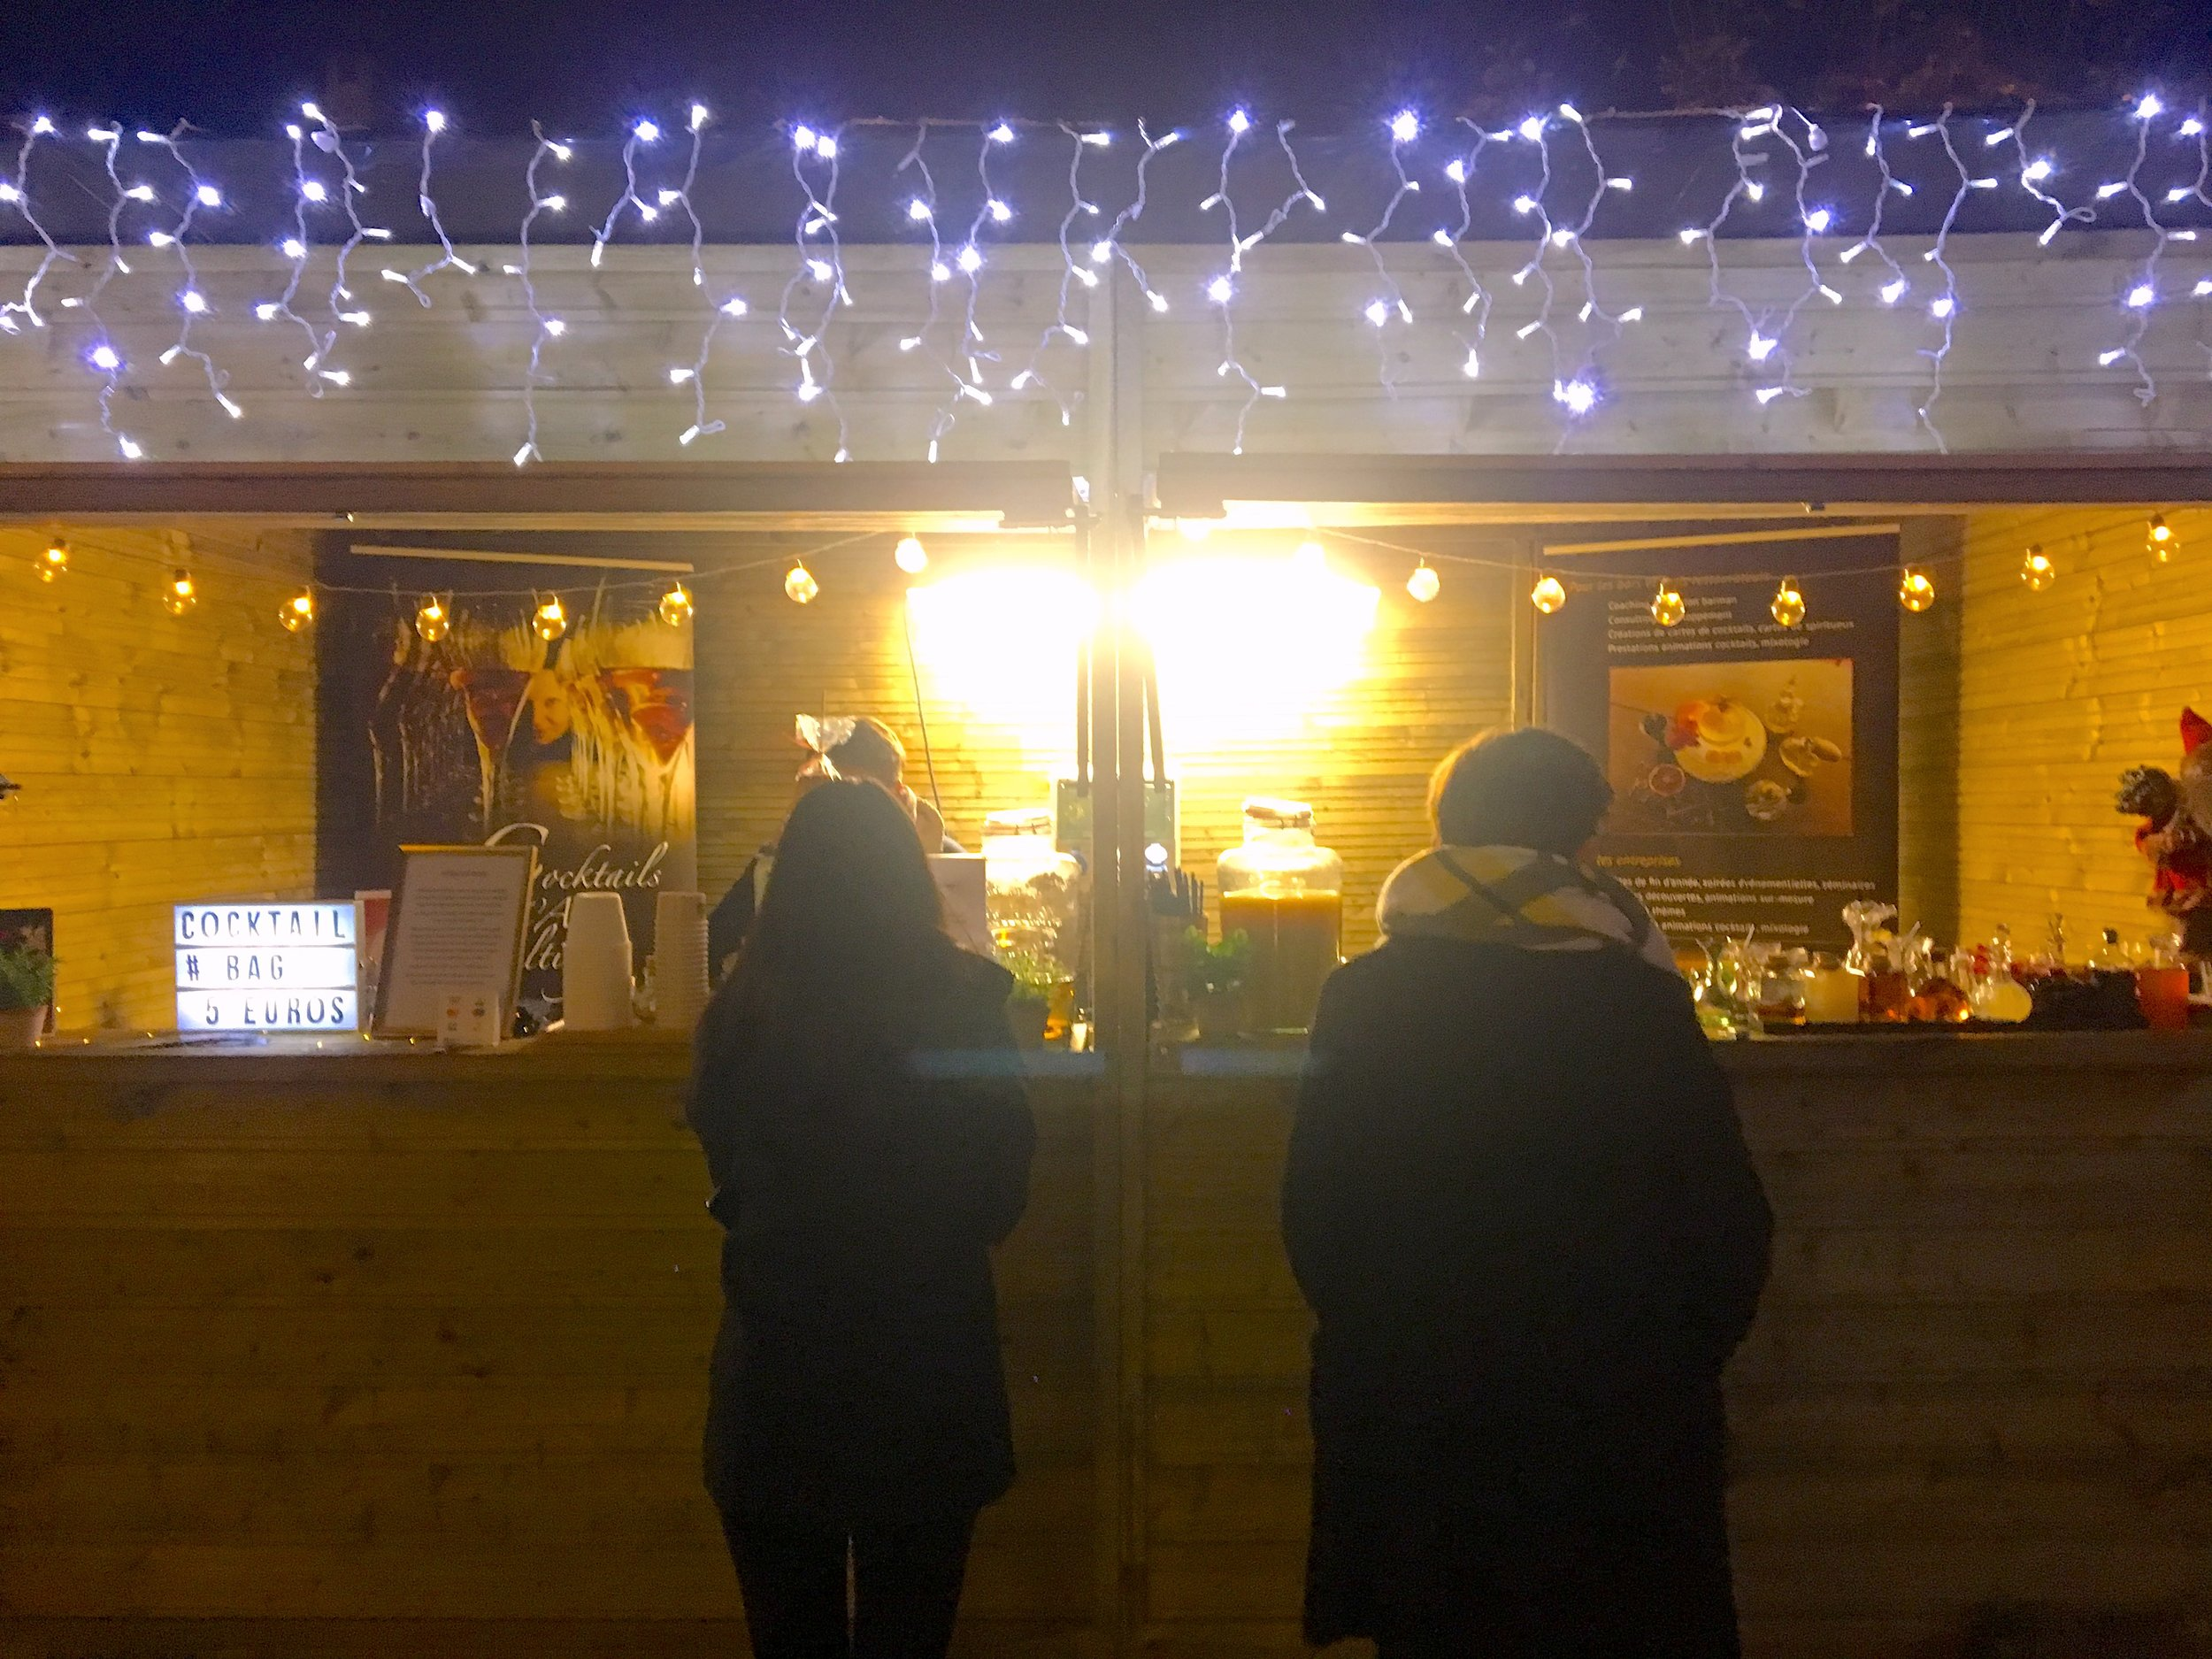 A booth at the local Christmas market